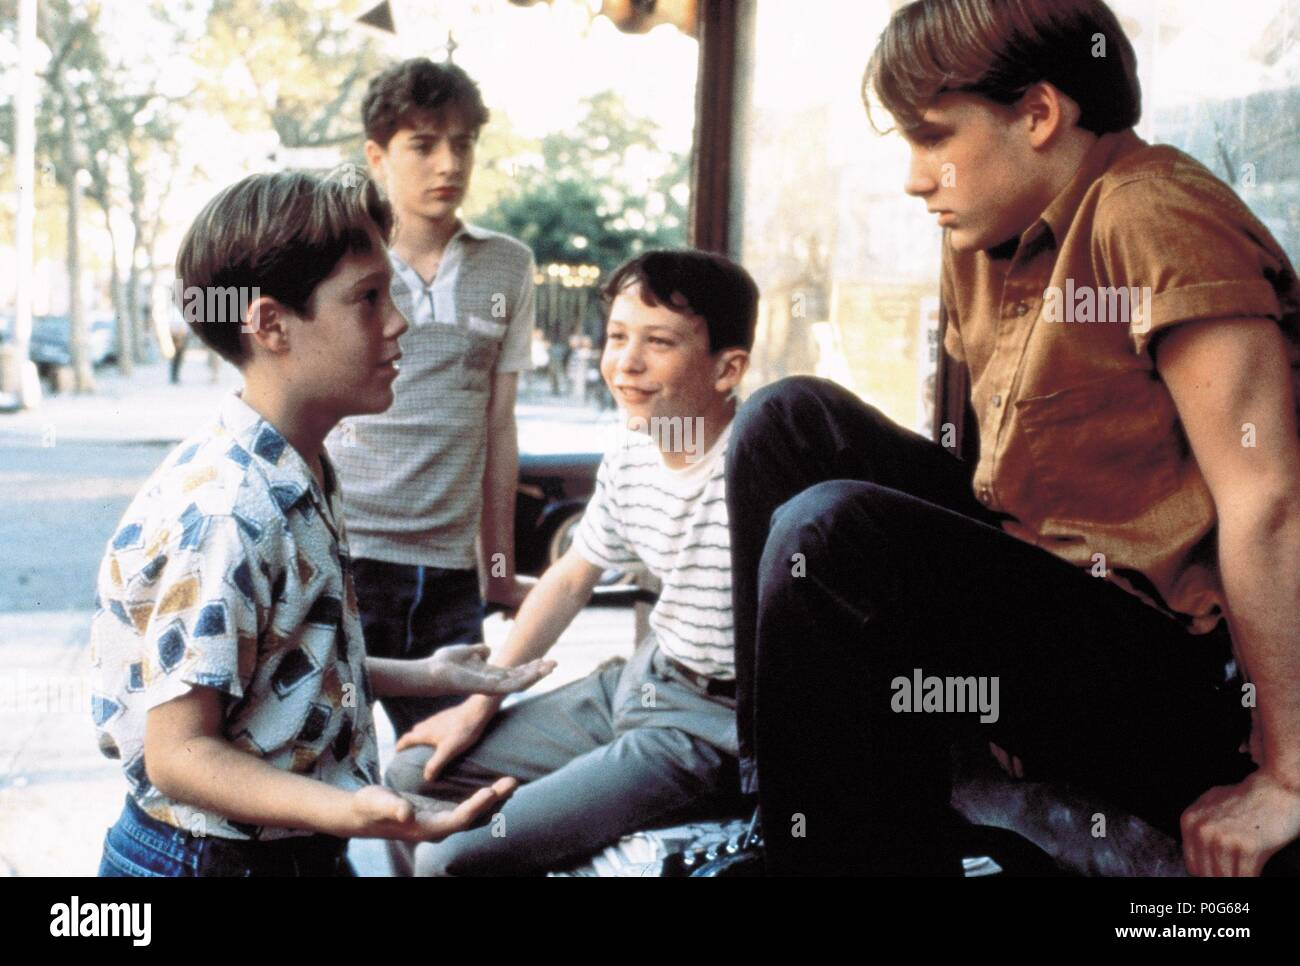 Original Film Titel Schwellen Englischer Titel Schwellen Regisseur Barry Levinson Jahr 1996 Stars Brad Renfro Jonathan Tucker Joe Perrino Geoffrey Wigdor Credit Propaganda Films Baltimore Bilder Album Stockfotografie Alamy